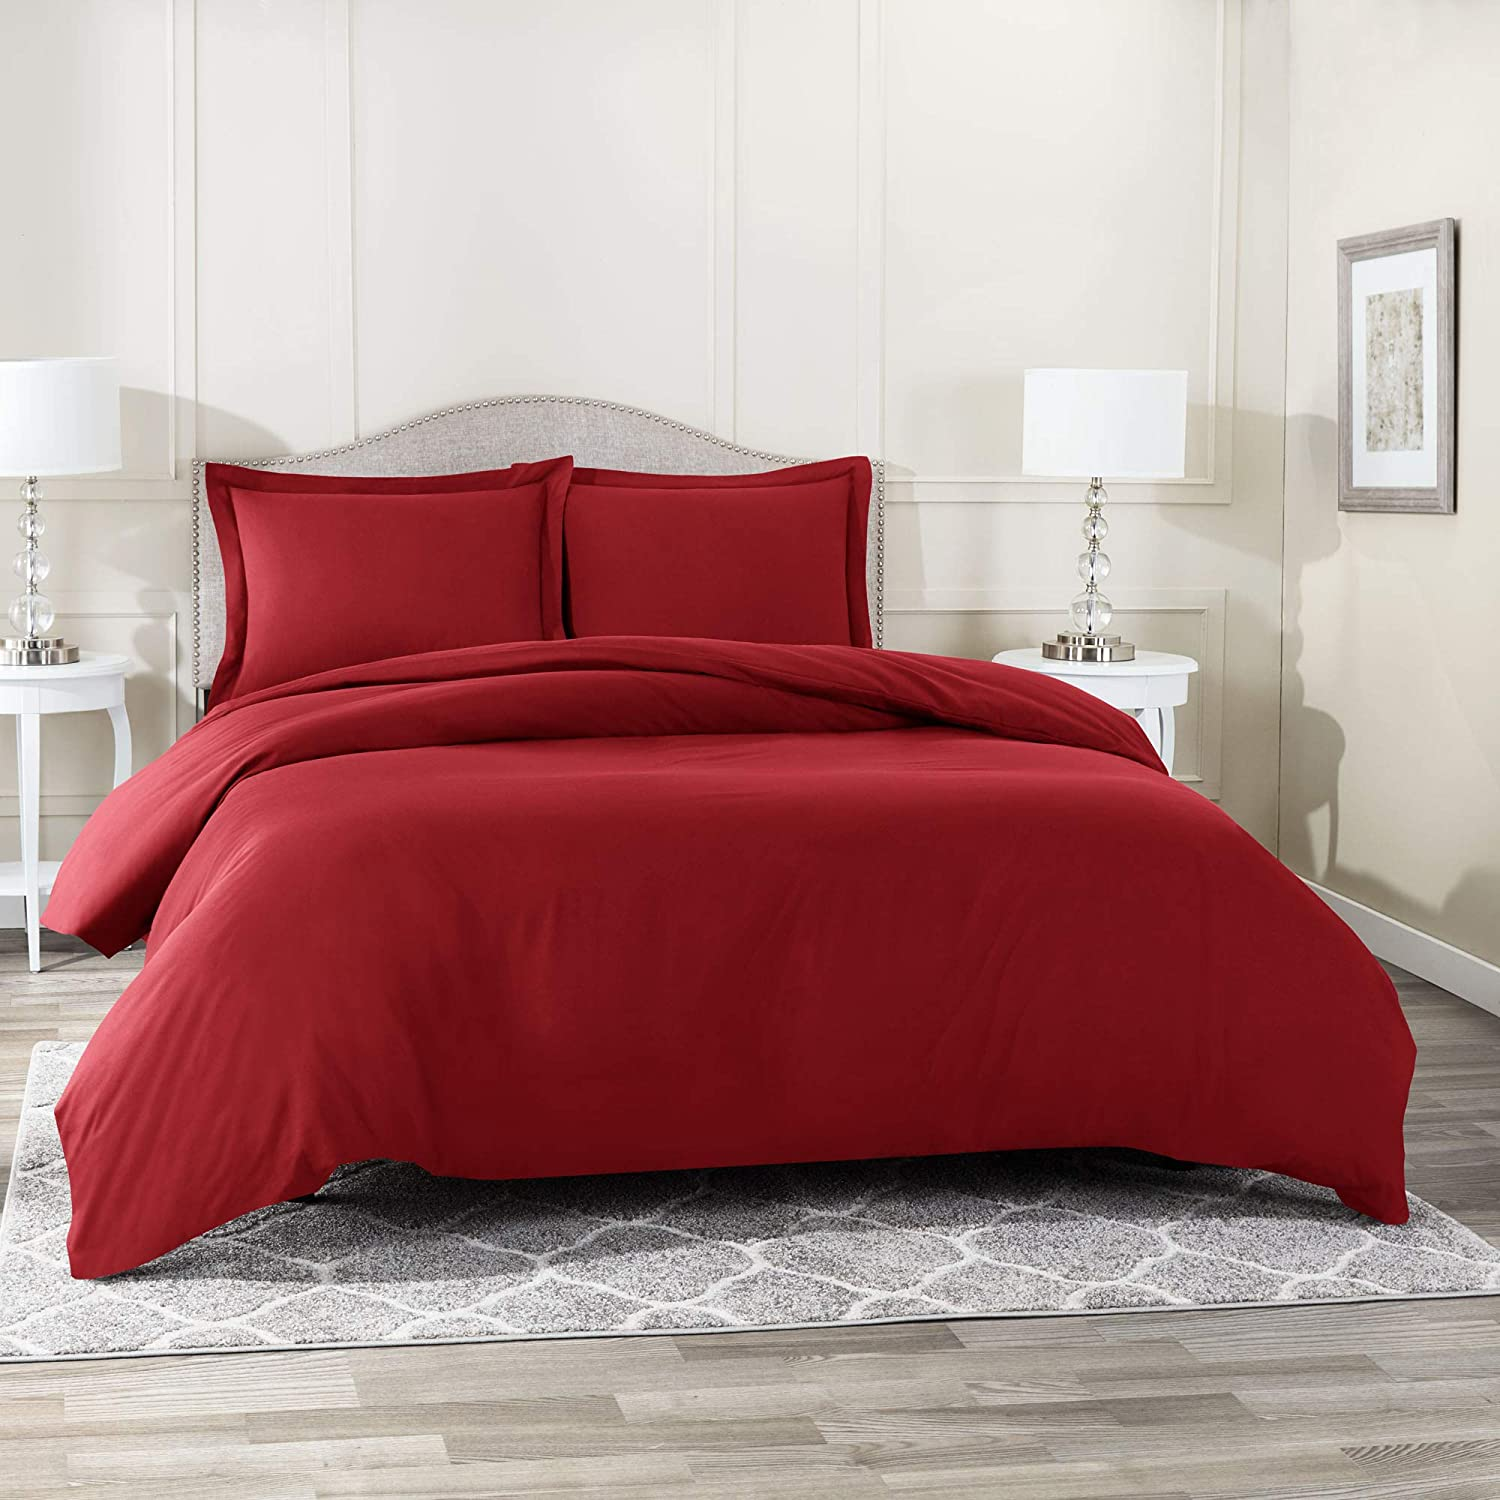 """Nestl Bedding Duvet Cover 3 Piece Set – Ultra Soft Double Brushed Microfiber Hotel Collection – Comforter Cover with Button Closure and 2 Pillow Shams, Burgundy - Queen 90""""x90"""""""